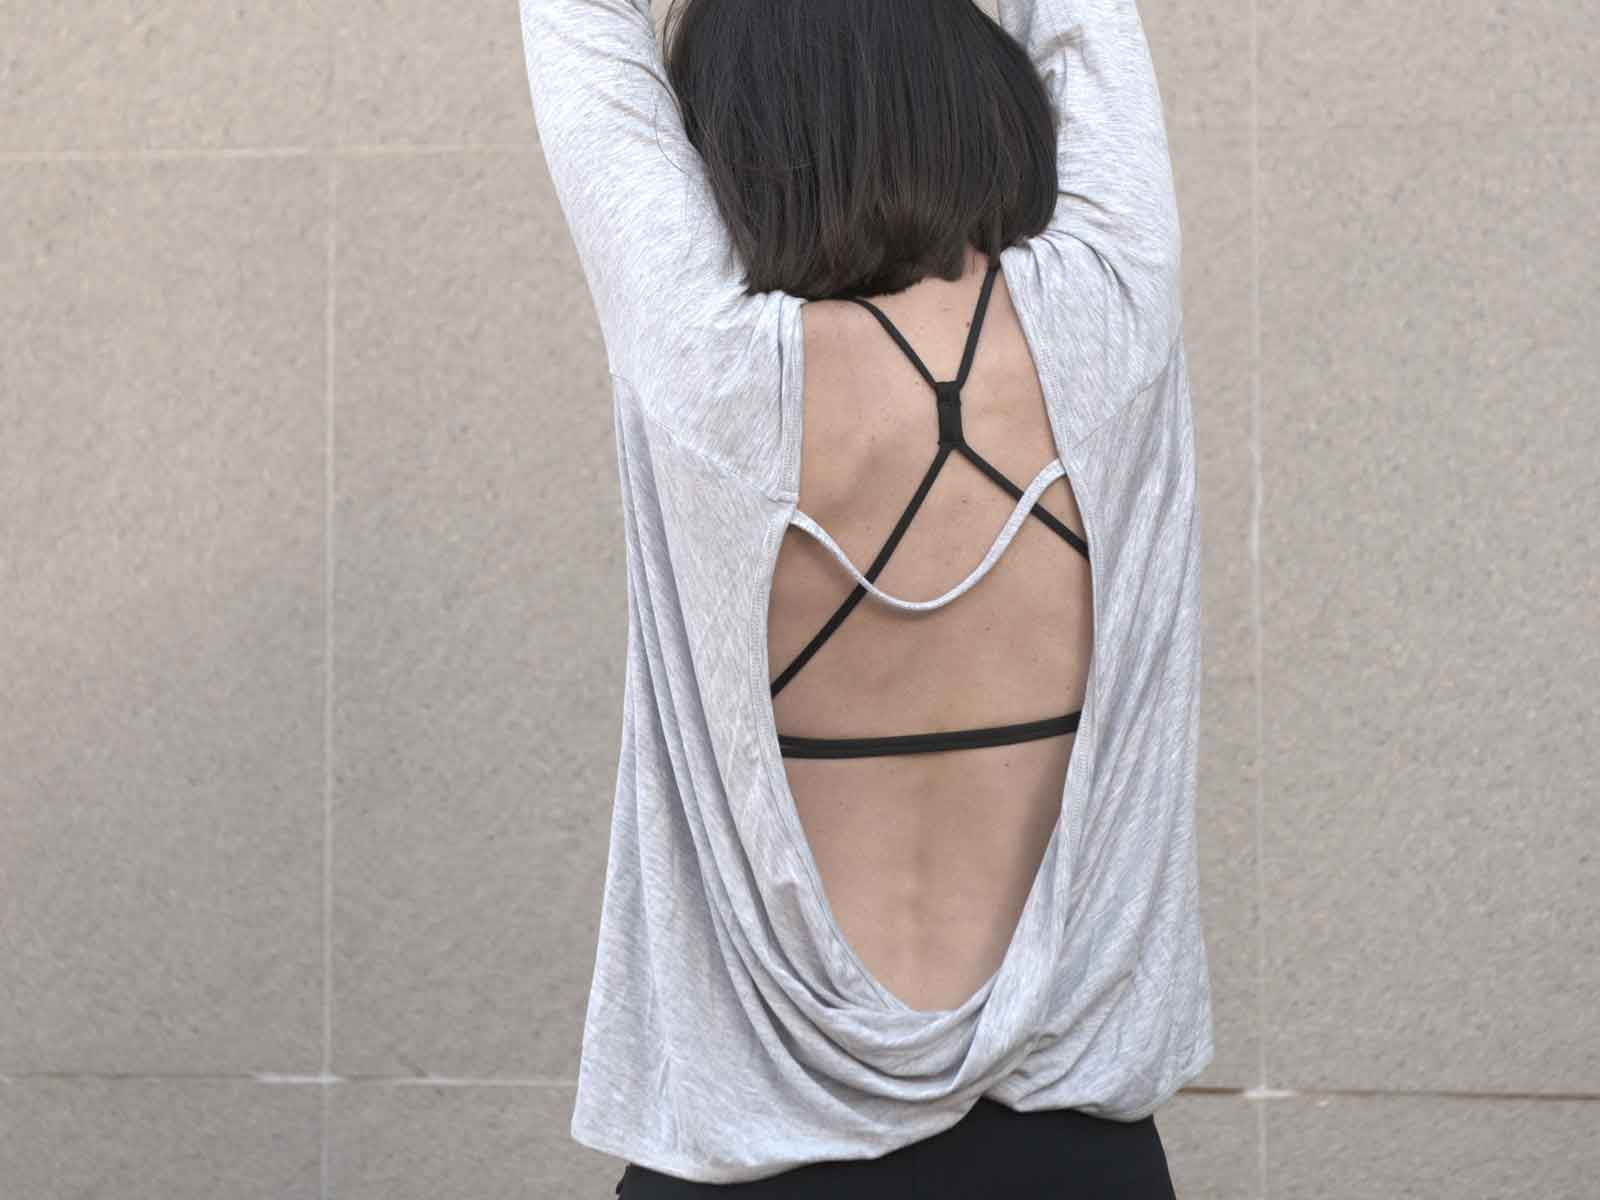 The 6 Biggest Active Wear Trends of 2017 - Lorna Jane Top